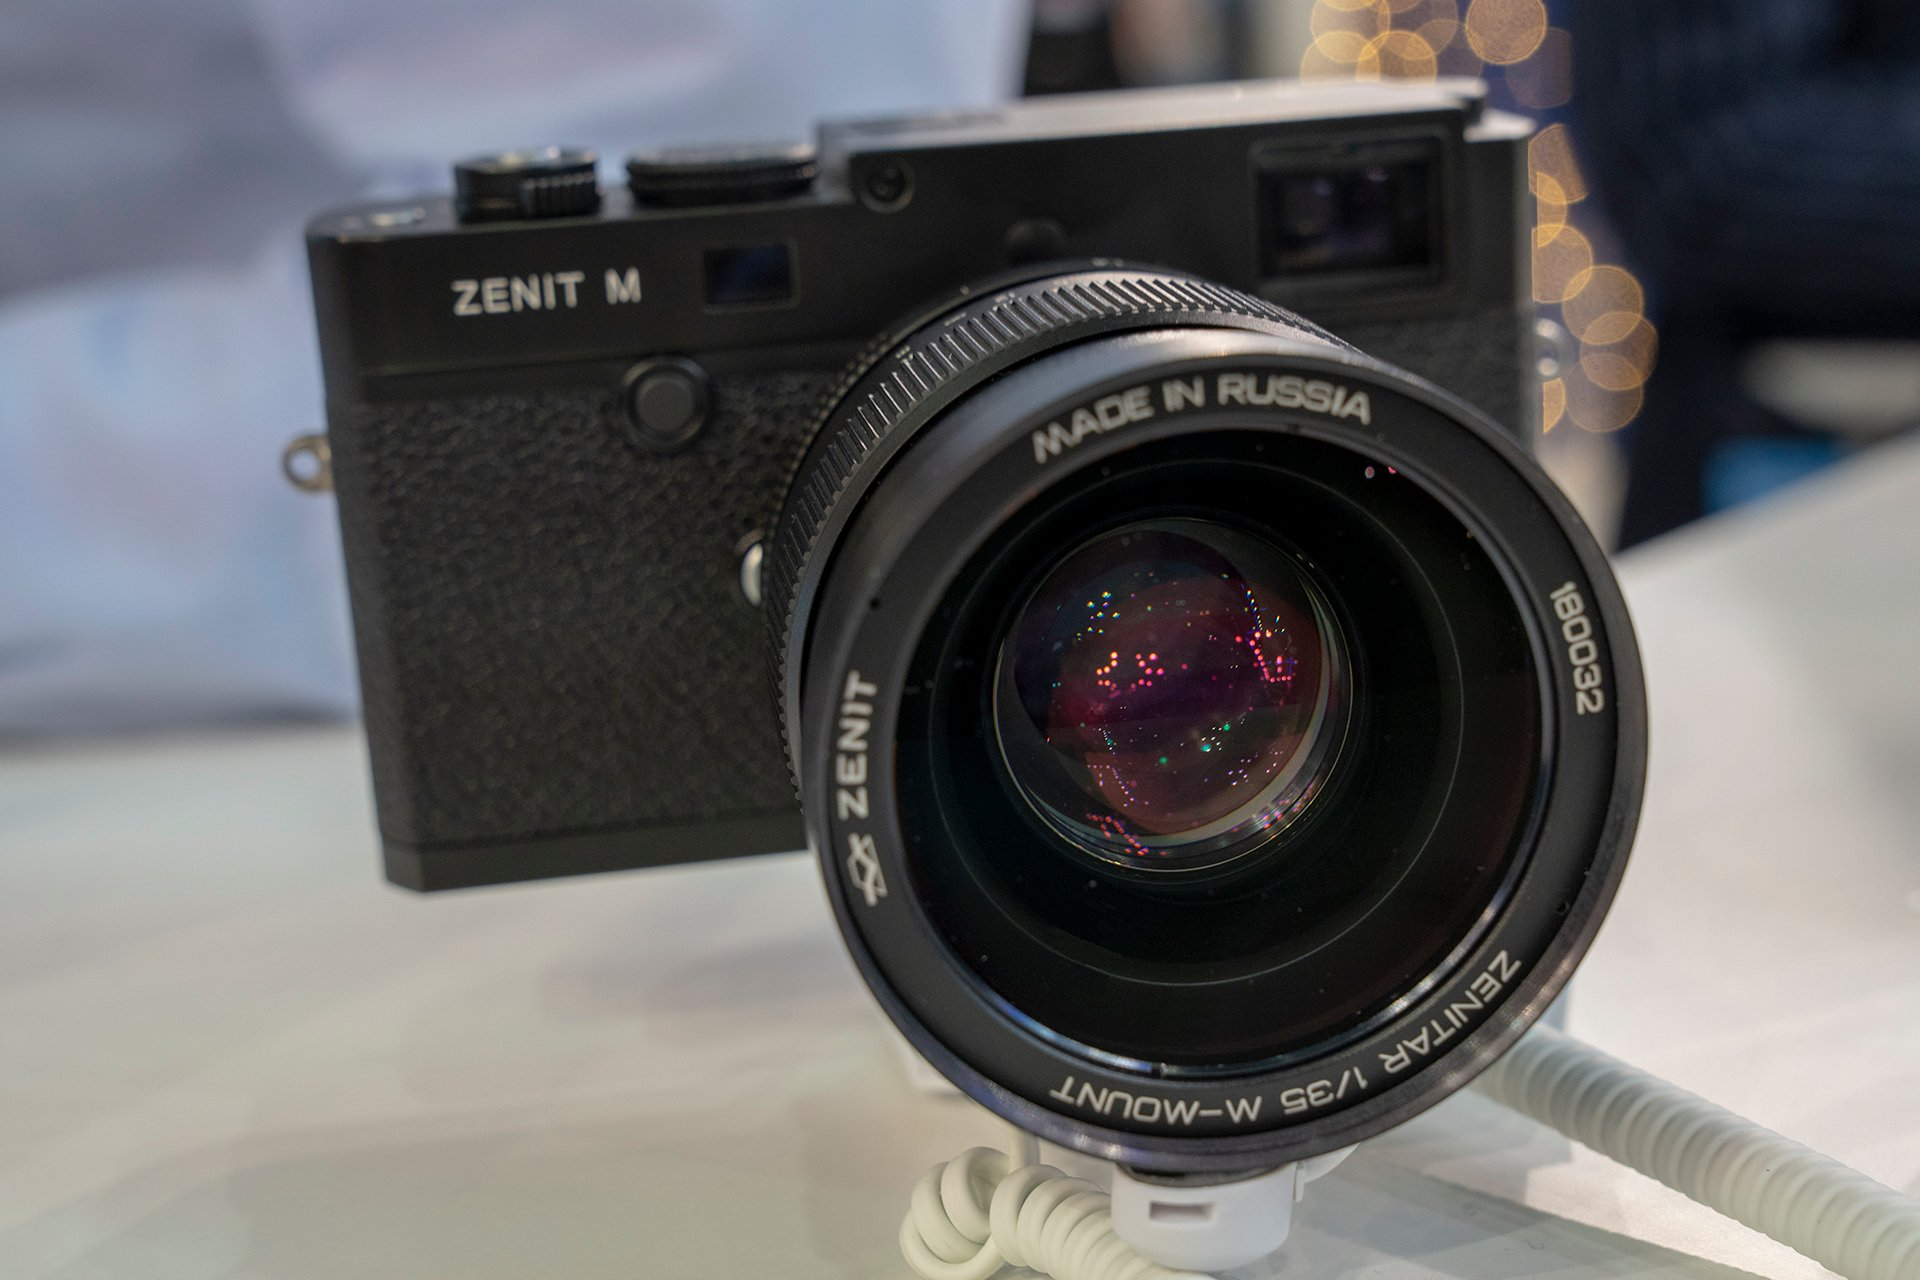 The new Leica M 240 based Zenit M digital rangefinder camera is now shipping